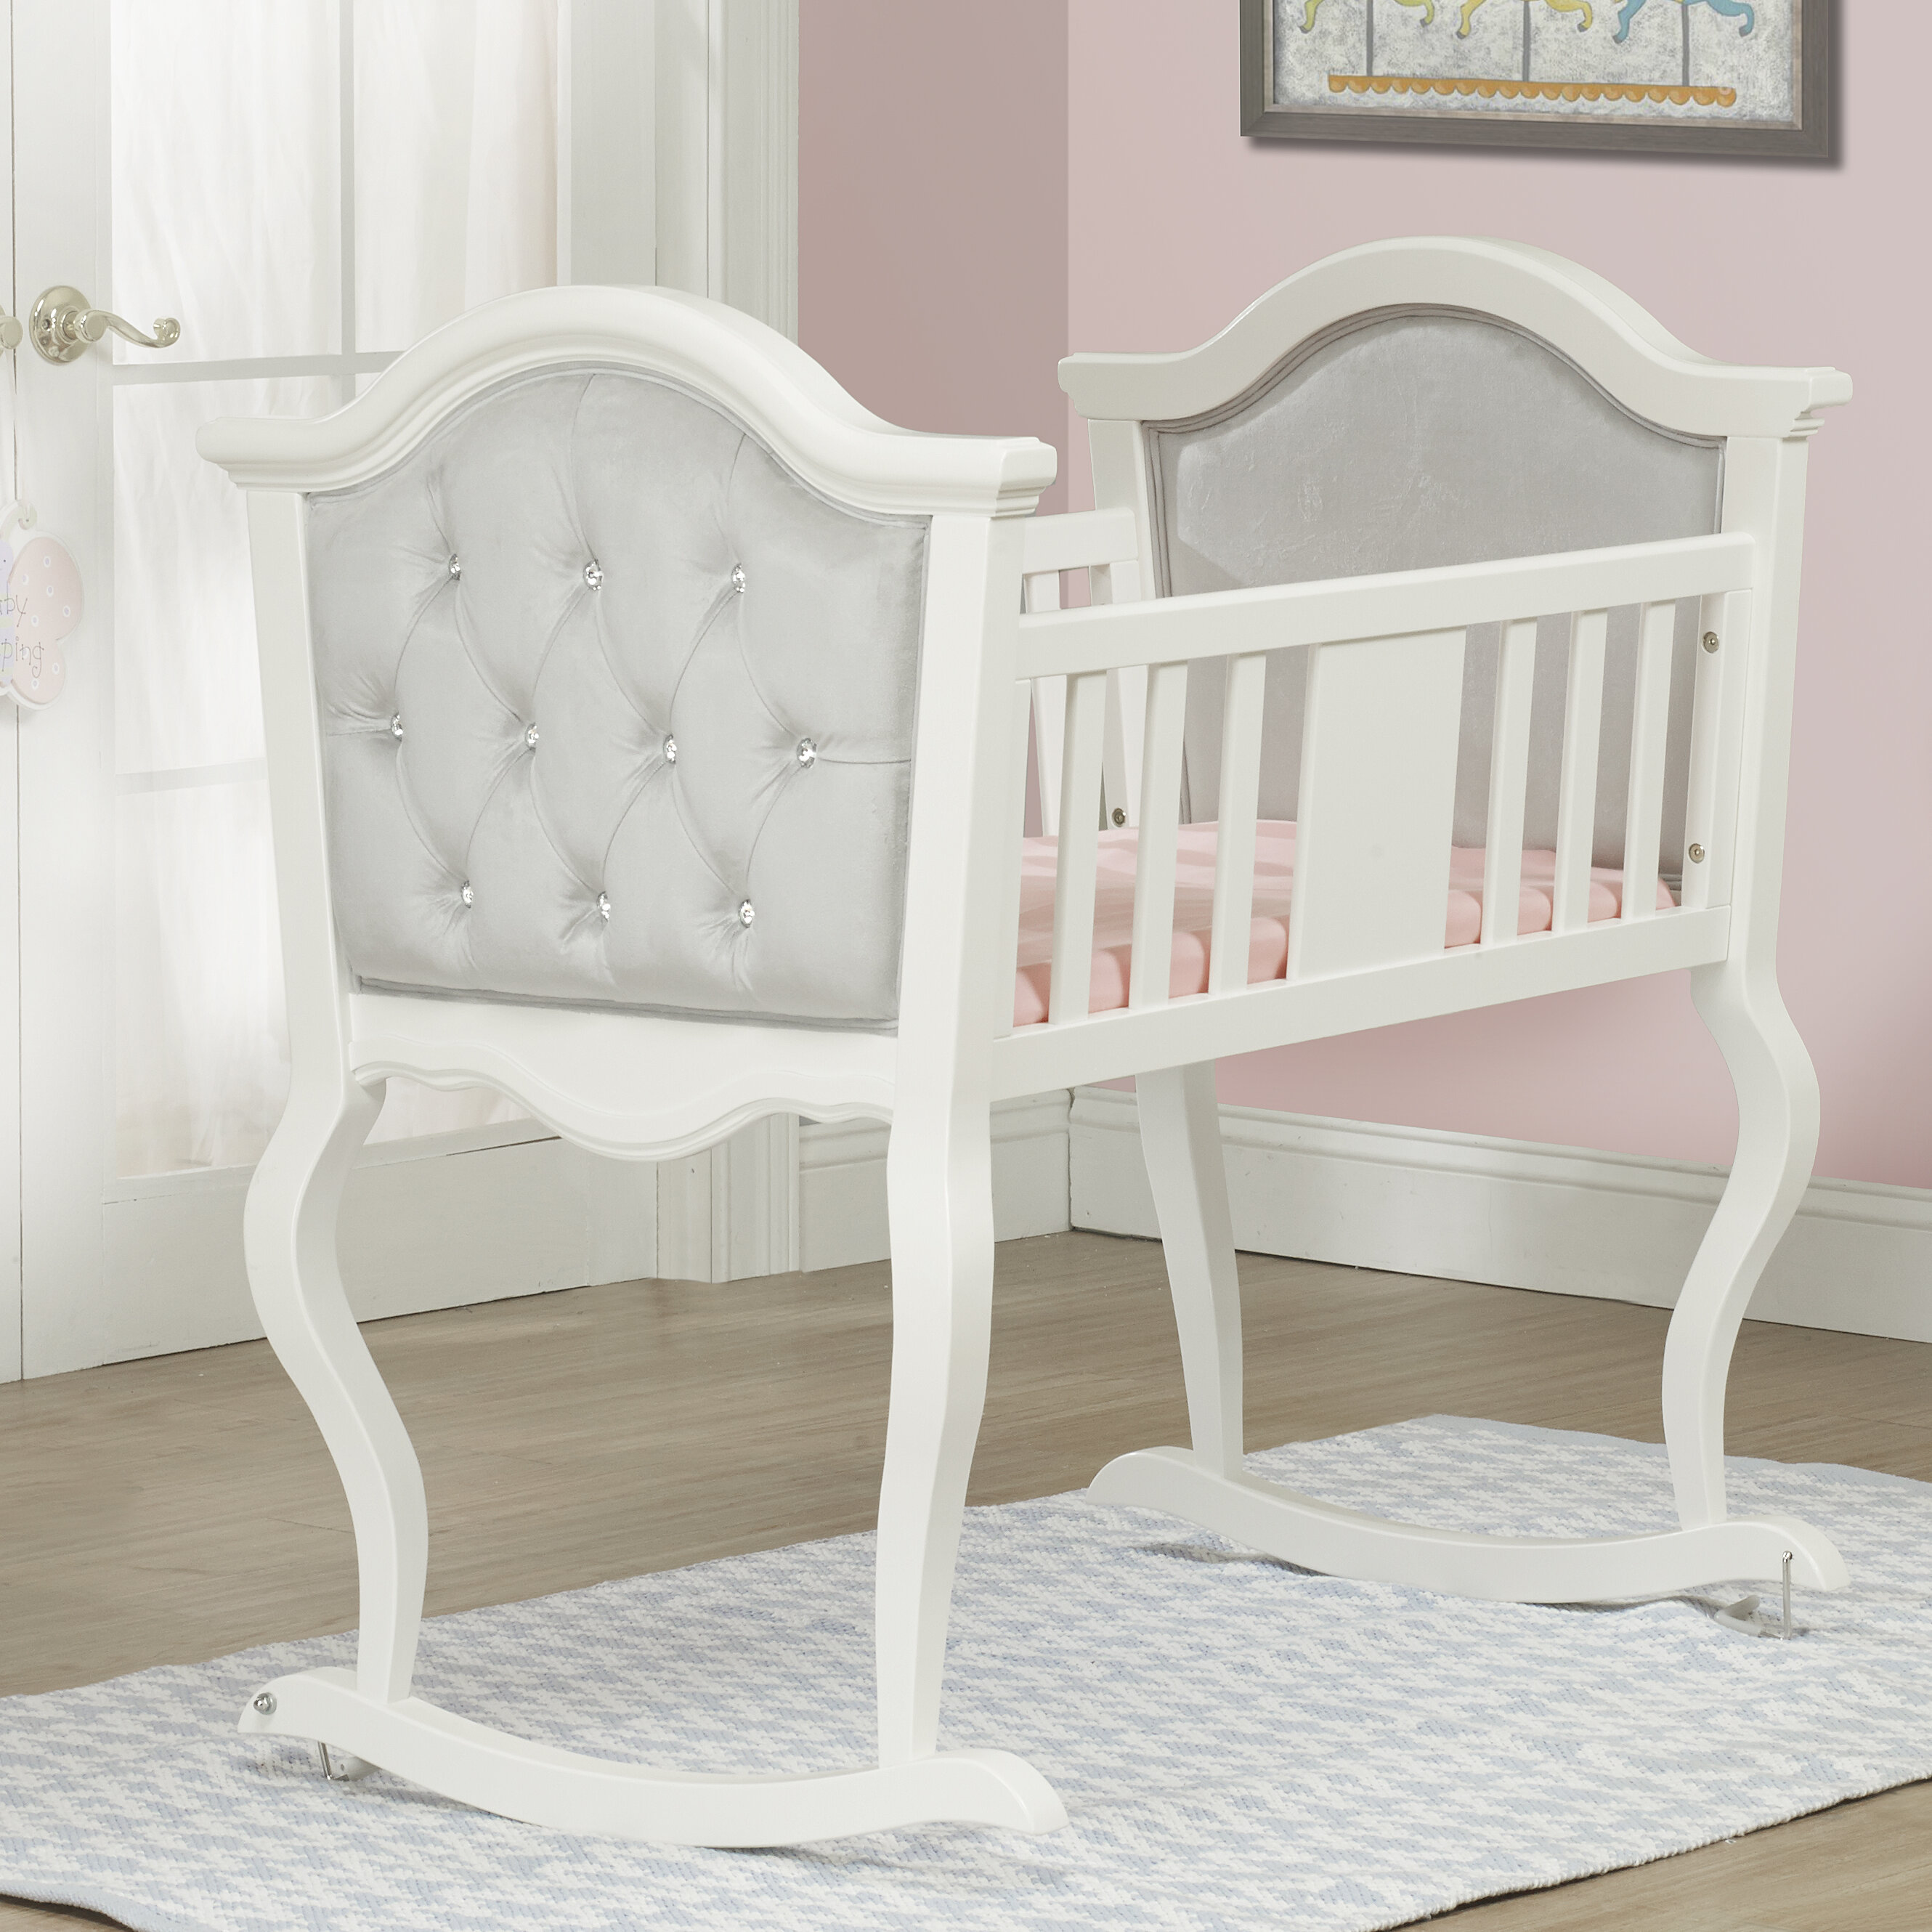 3f1801efe7 Orbelle French Lola Cradle   Reviews